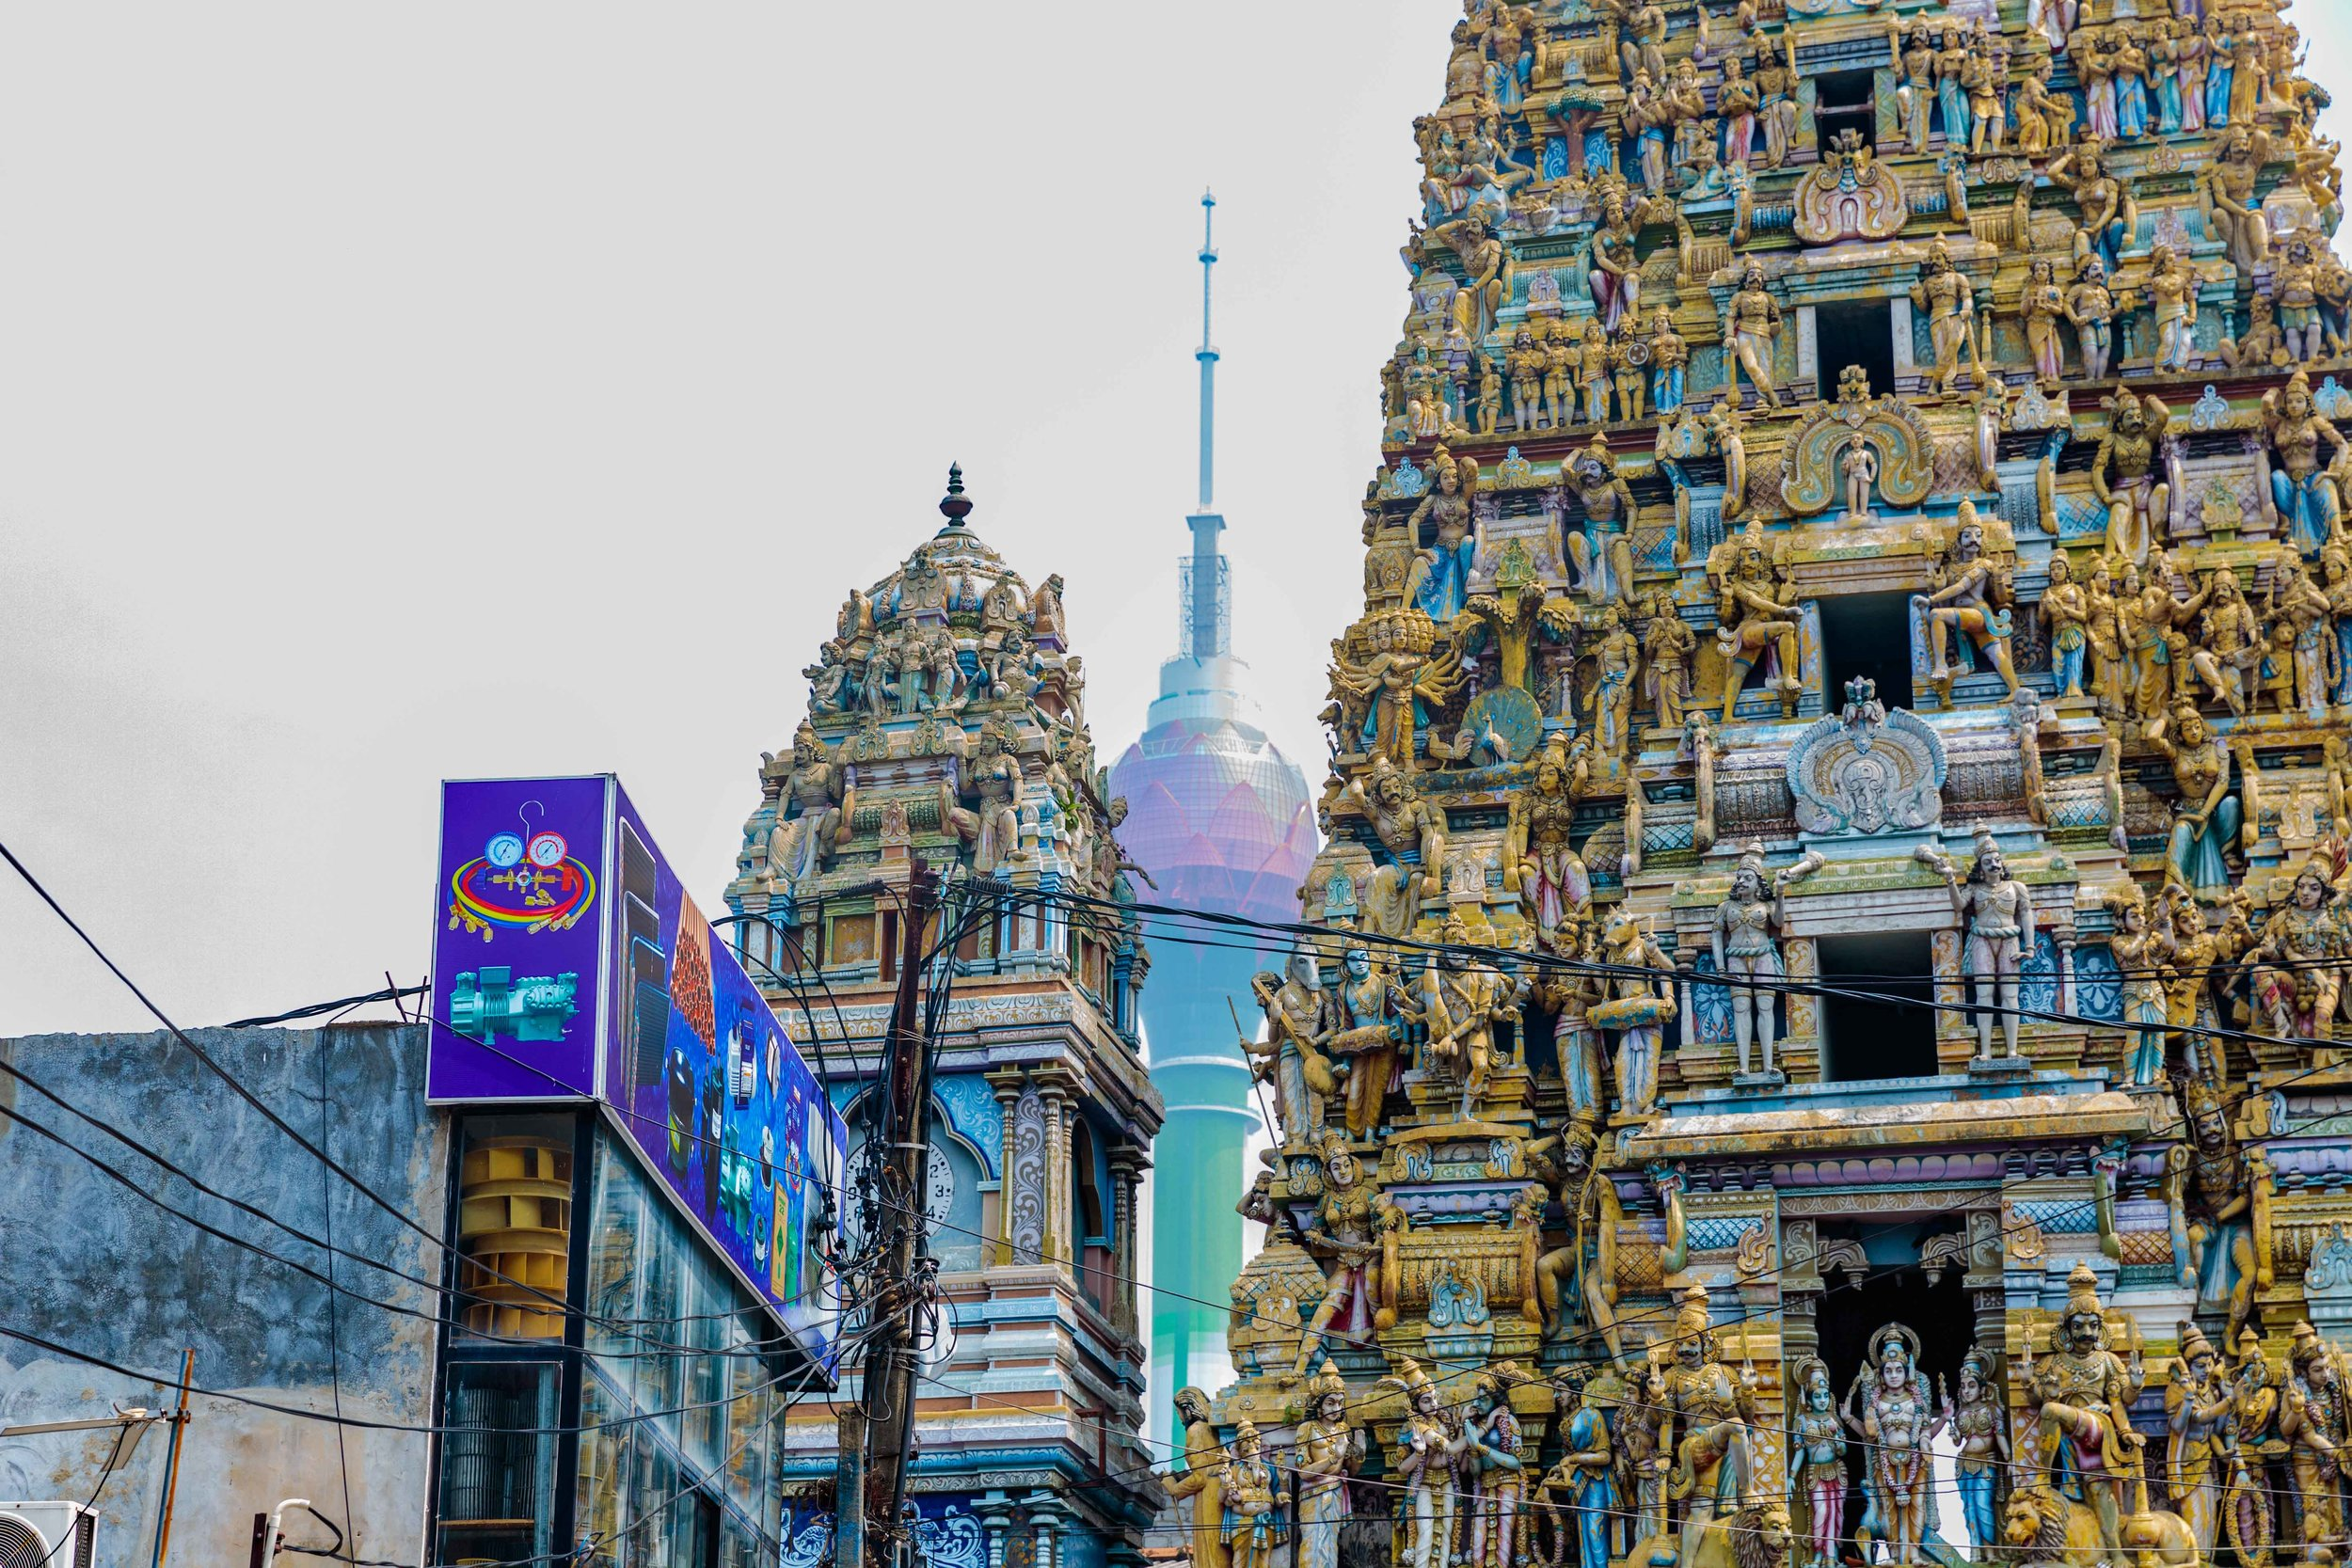 This shot optimises how Colombo amalgamates old and new with the Temple of Sri Kailawasanathan Swami Devasthanam Kovi overseen by the Lotus Tower